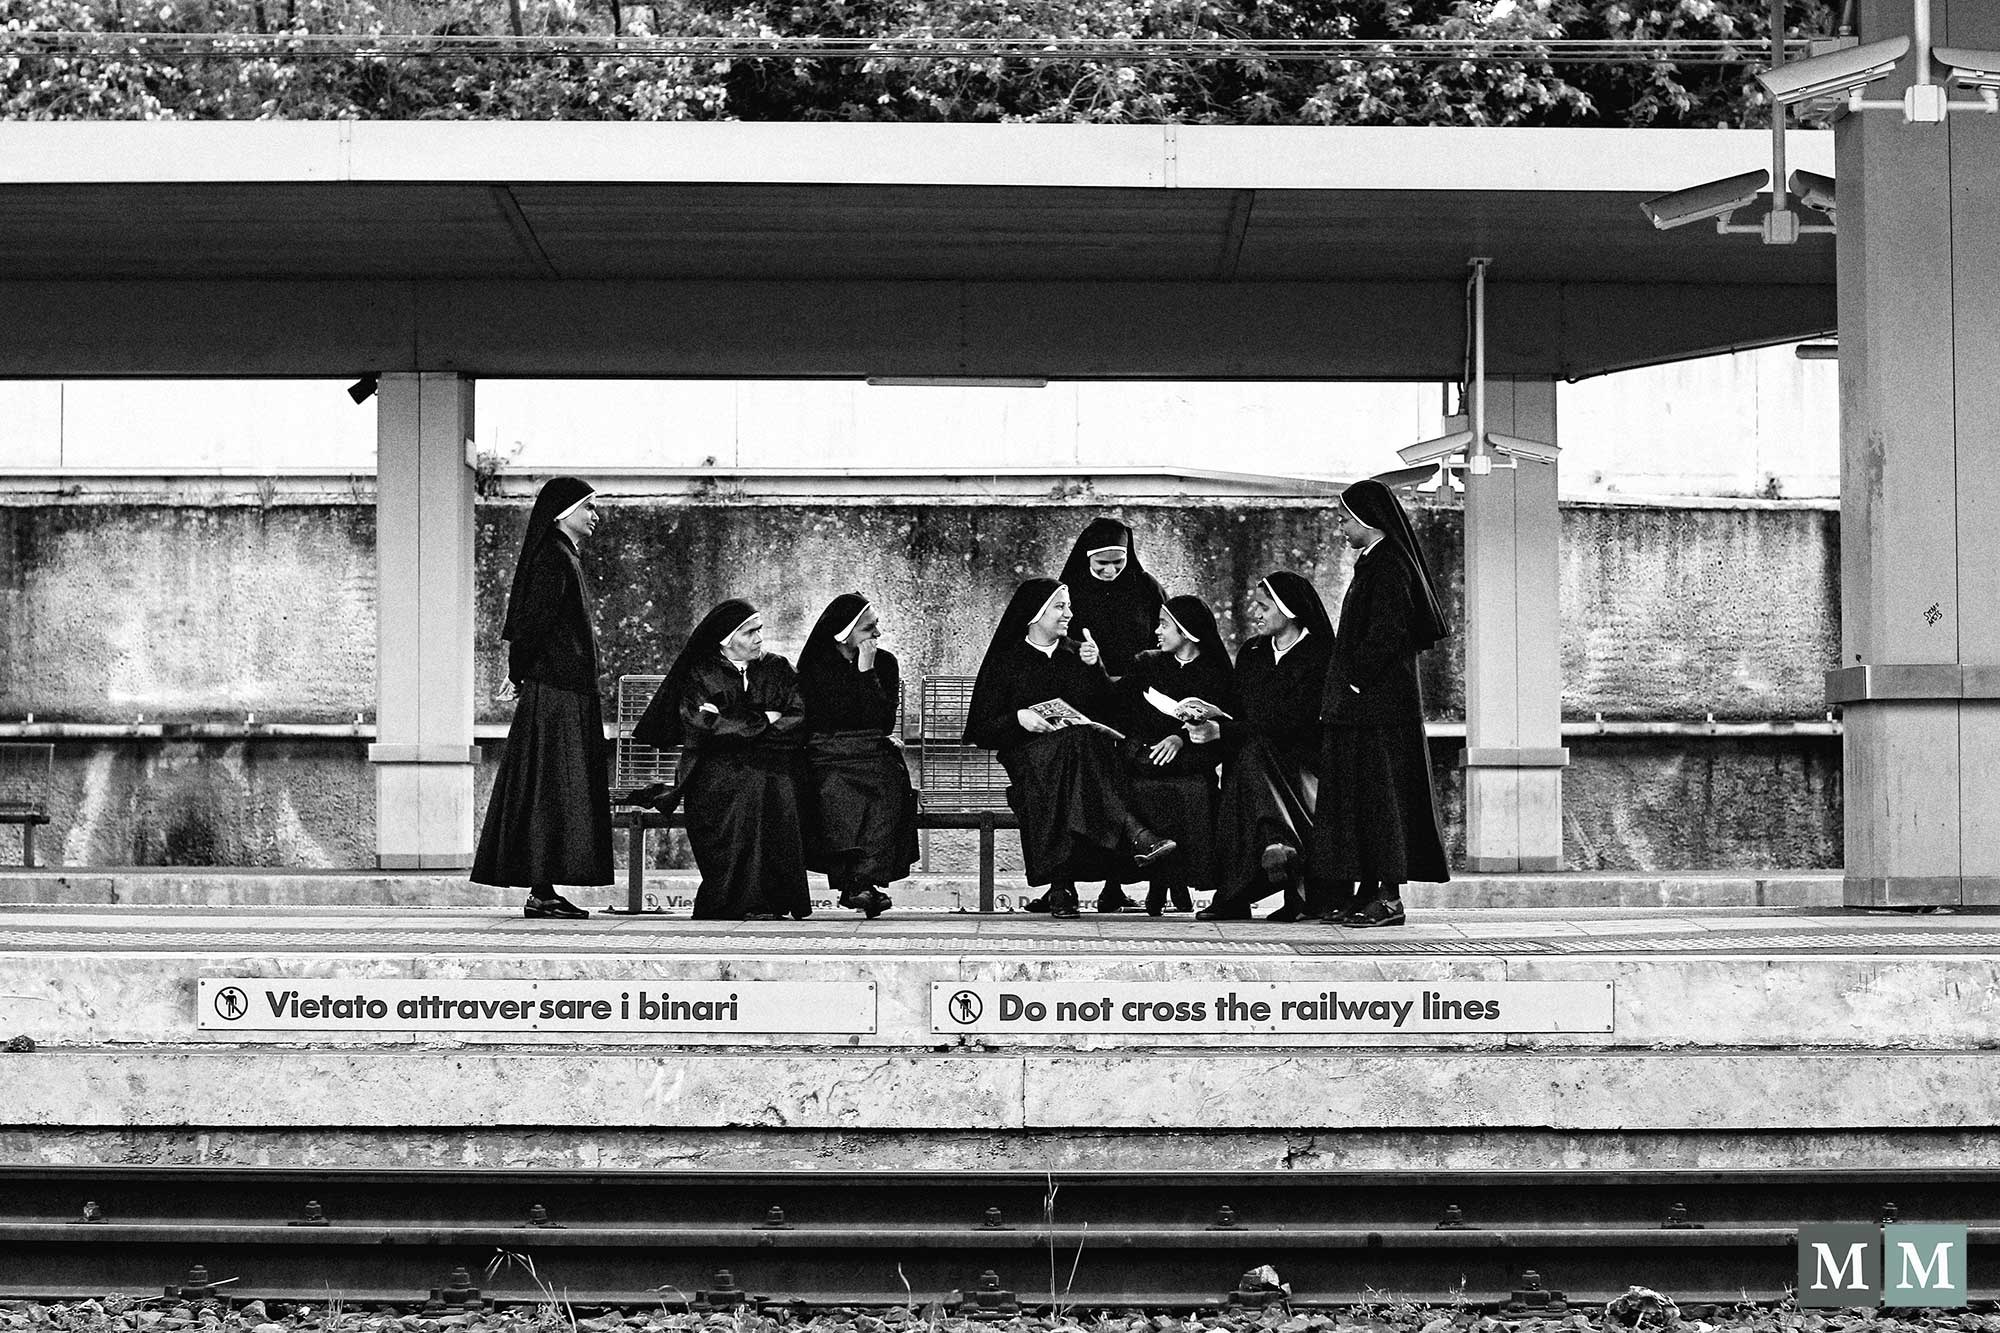 Sisters waiting on a train station in Rome by meszarovits